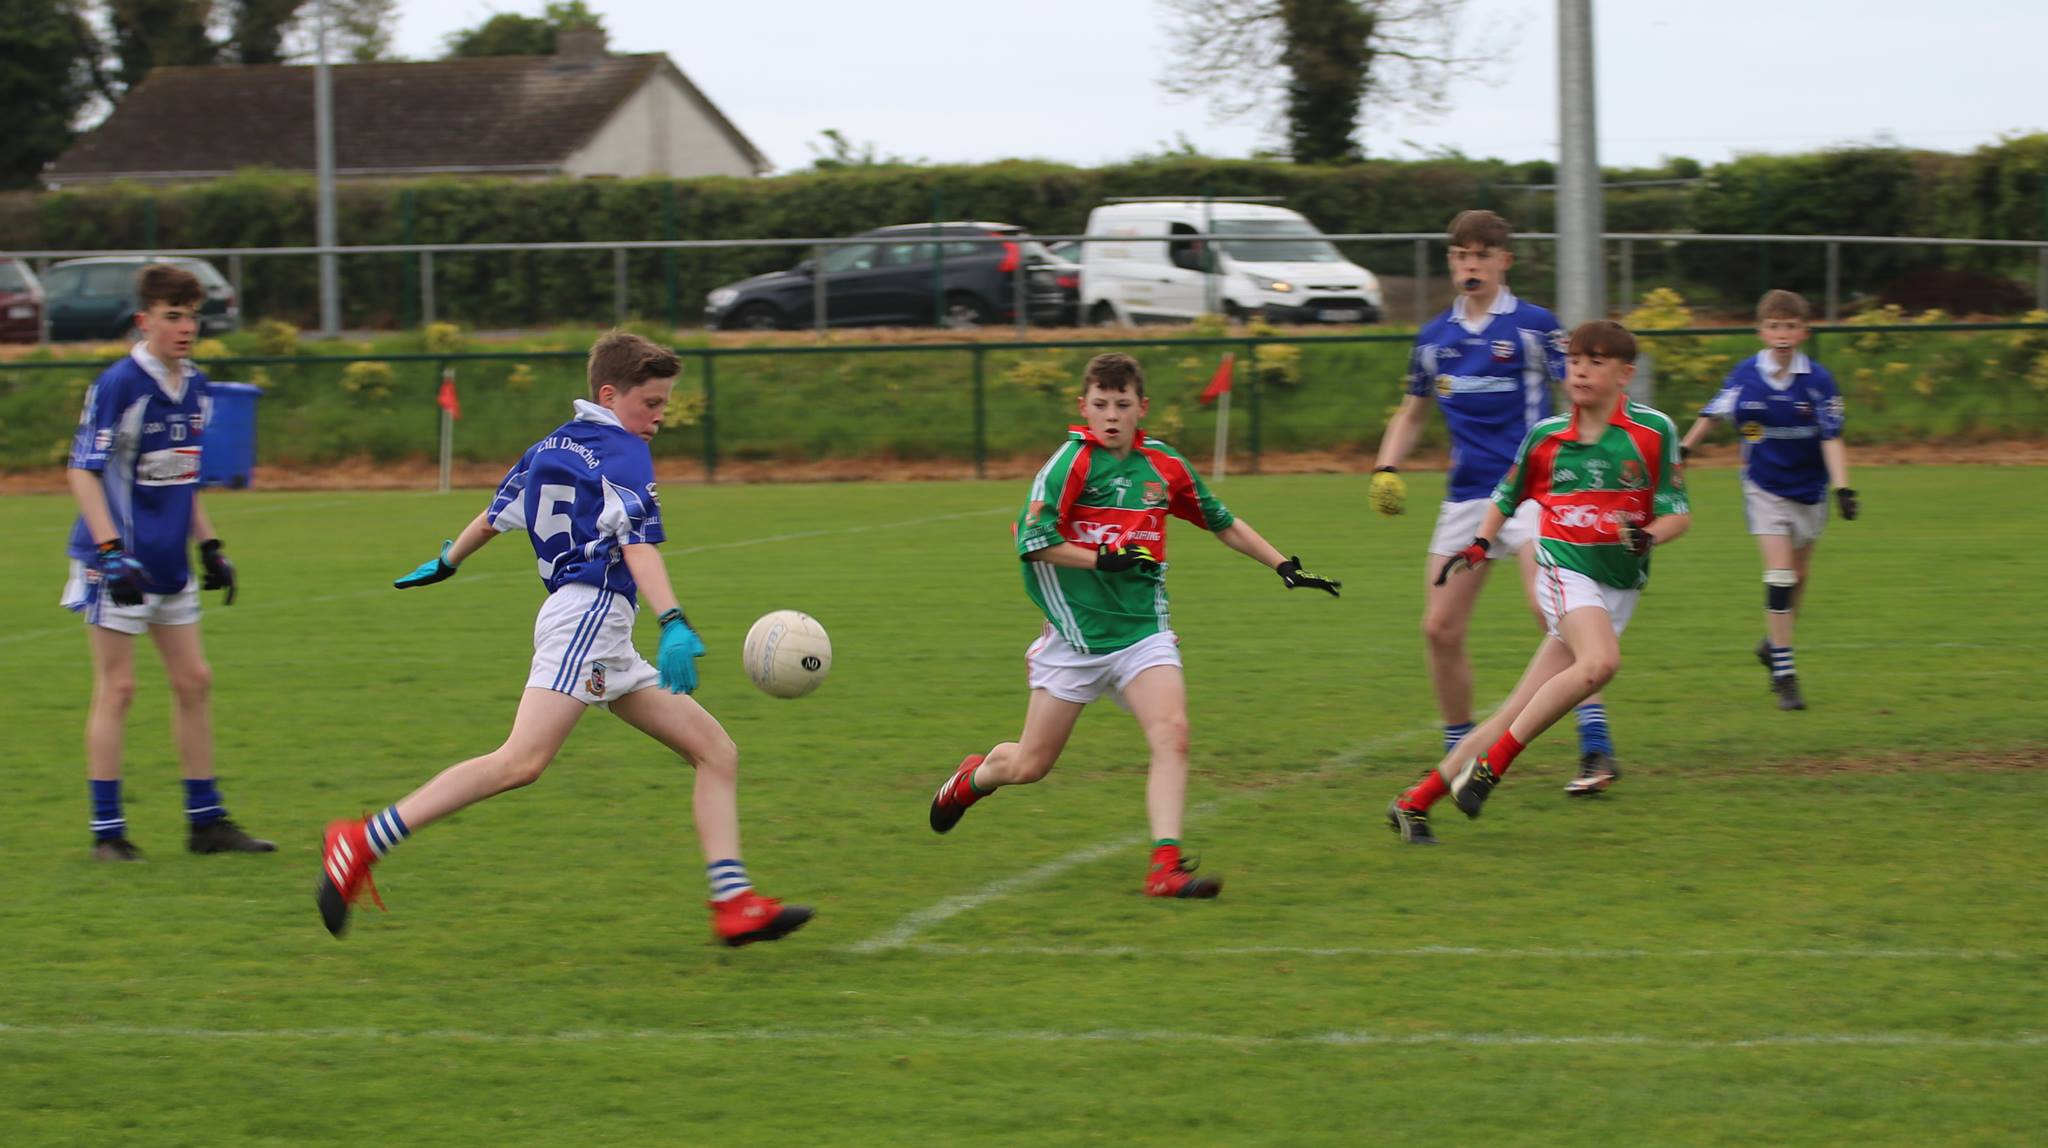 Suncroft v Celbridge Feile A Shield 17